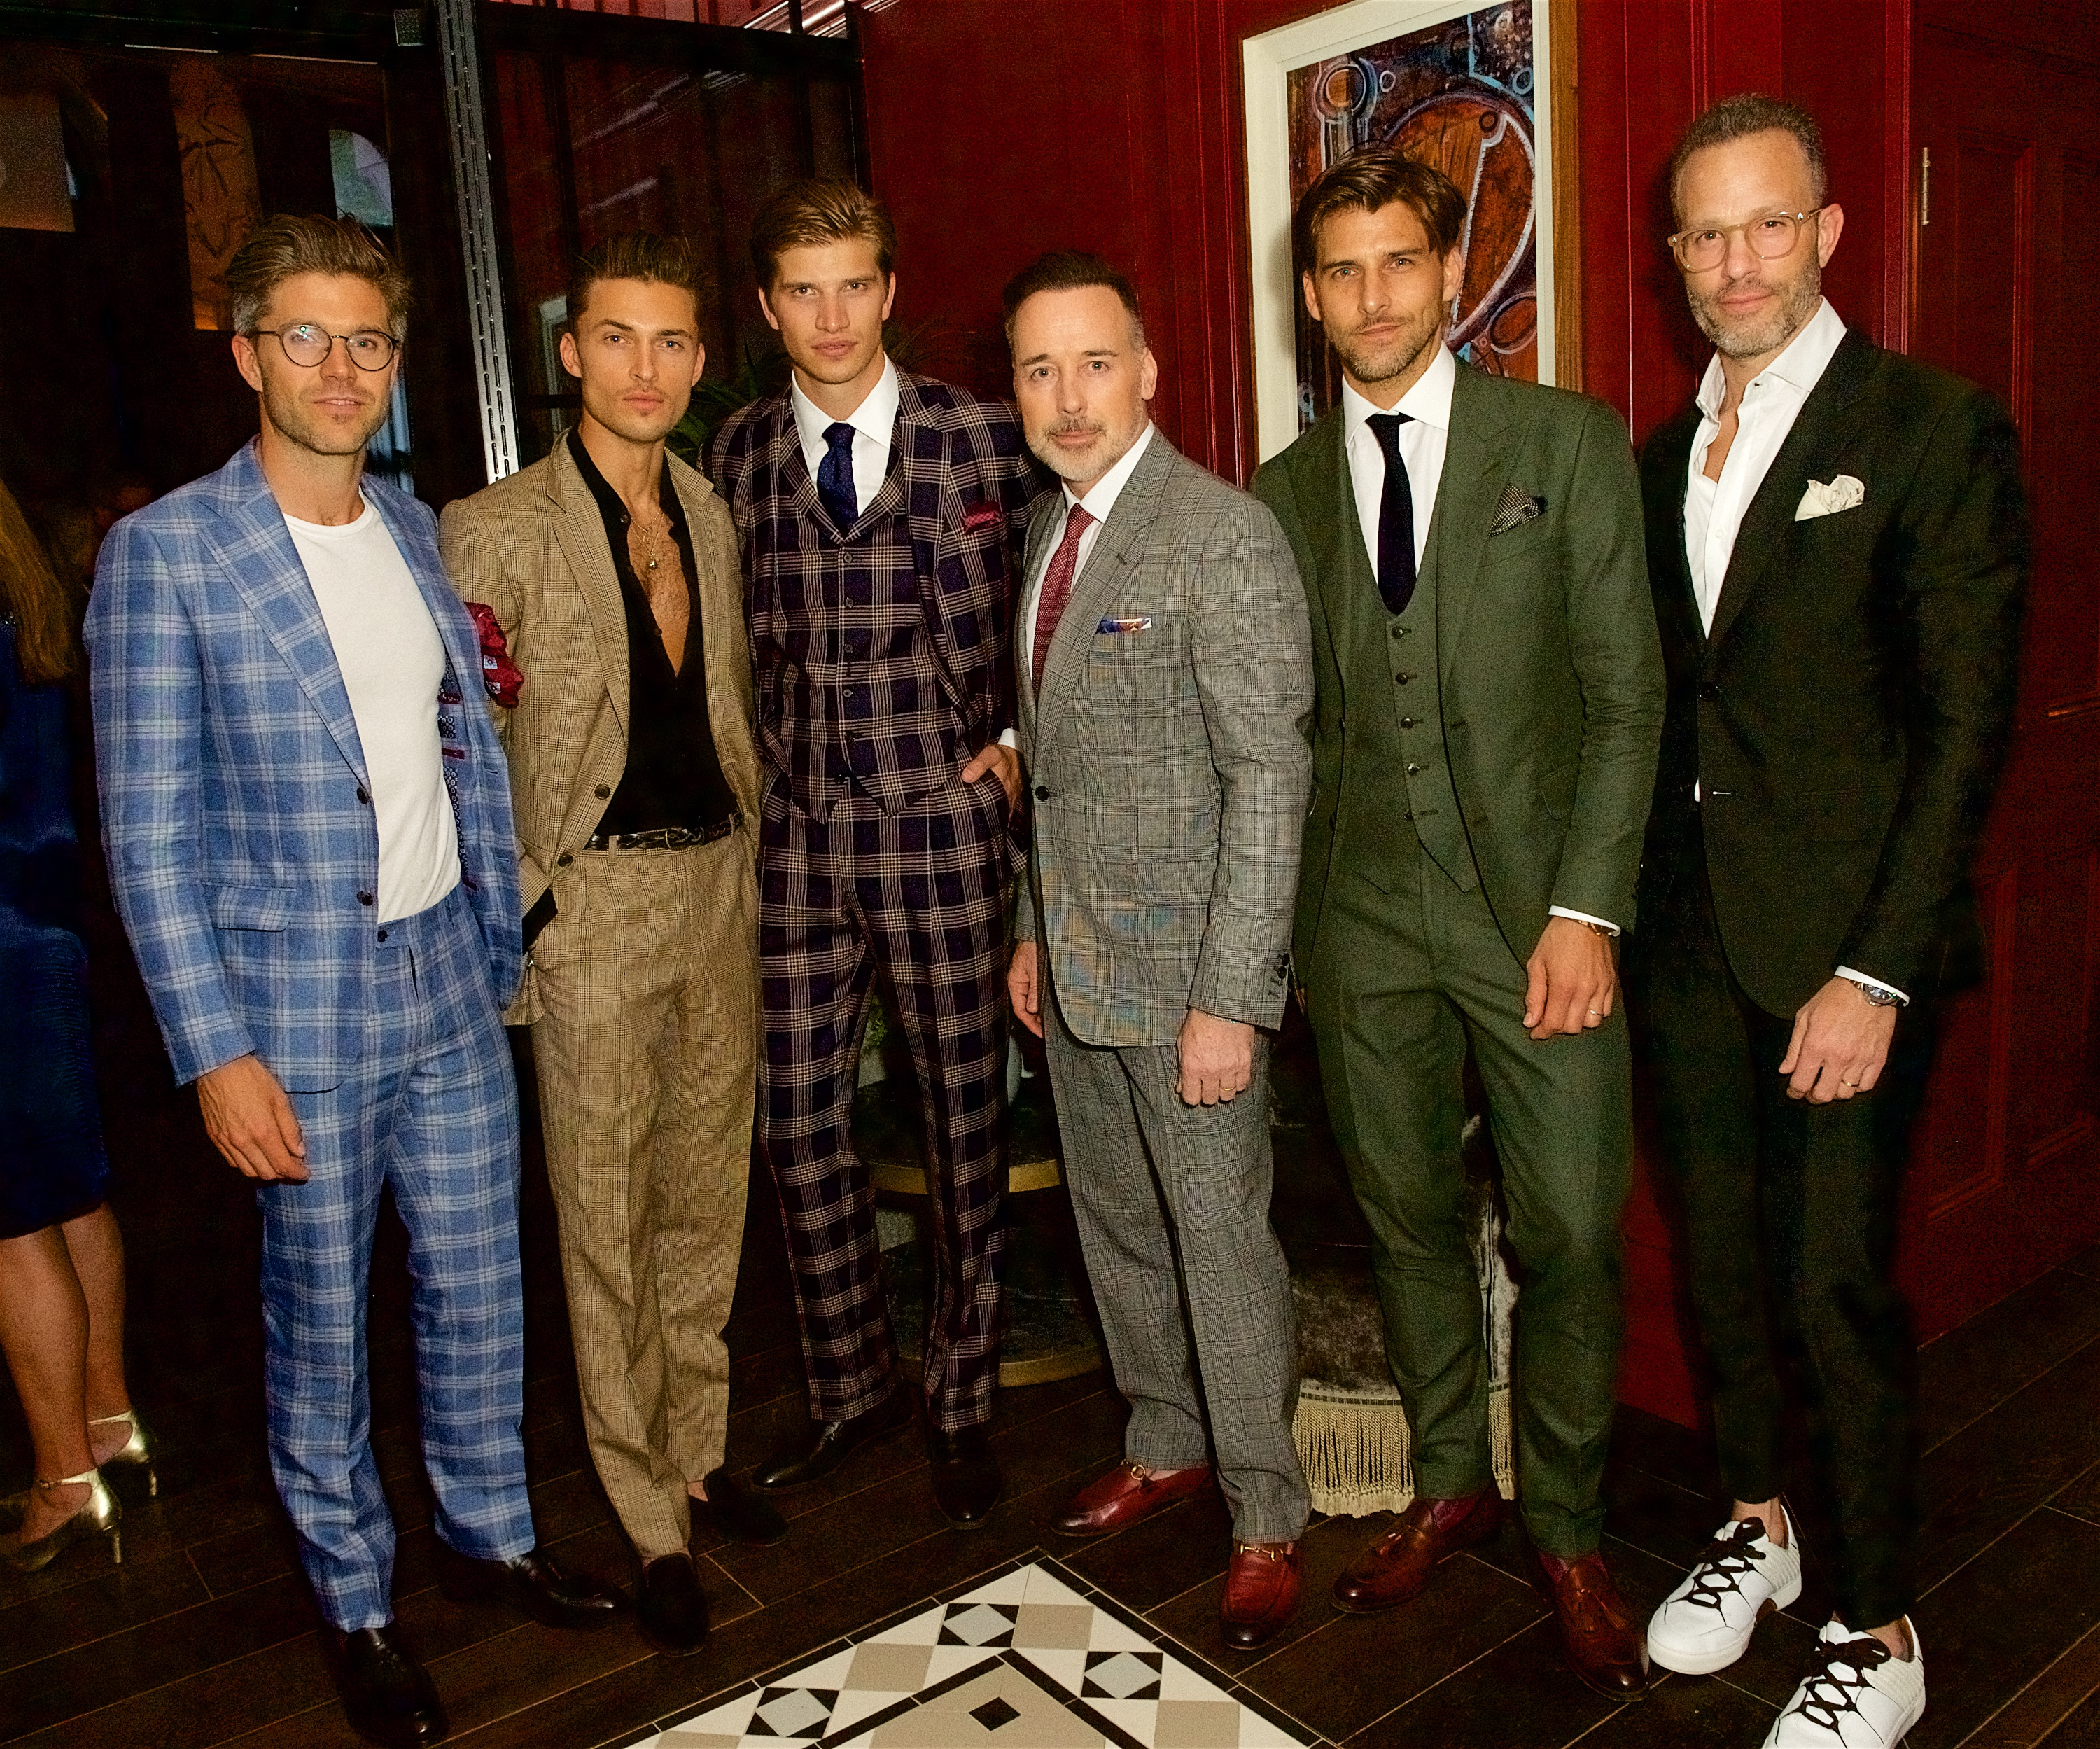 Darren Kennedy, Harvey Newton-Haydon, Toby Huntington Whitley, David Furnish, Johannes Huebl and Andrew Weitz